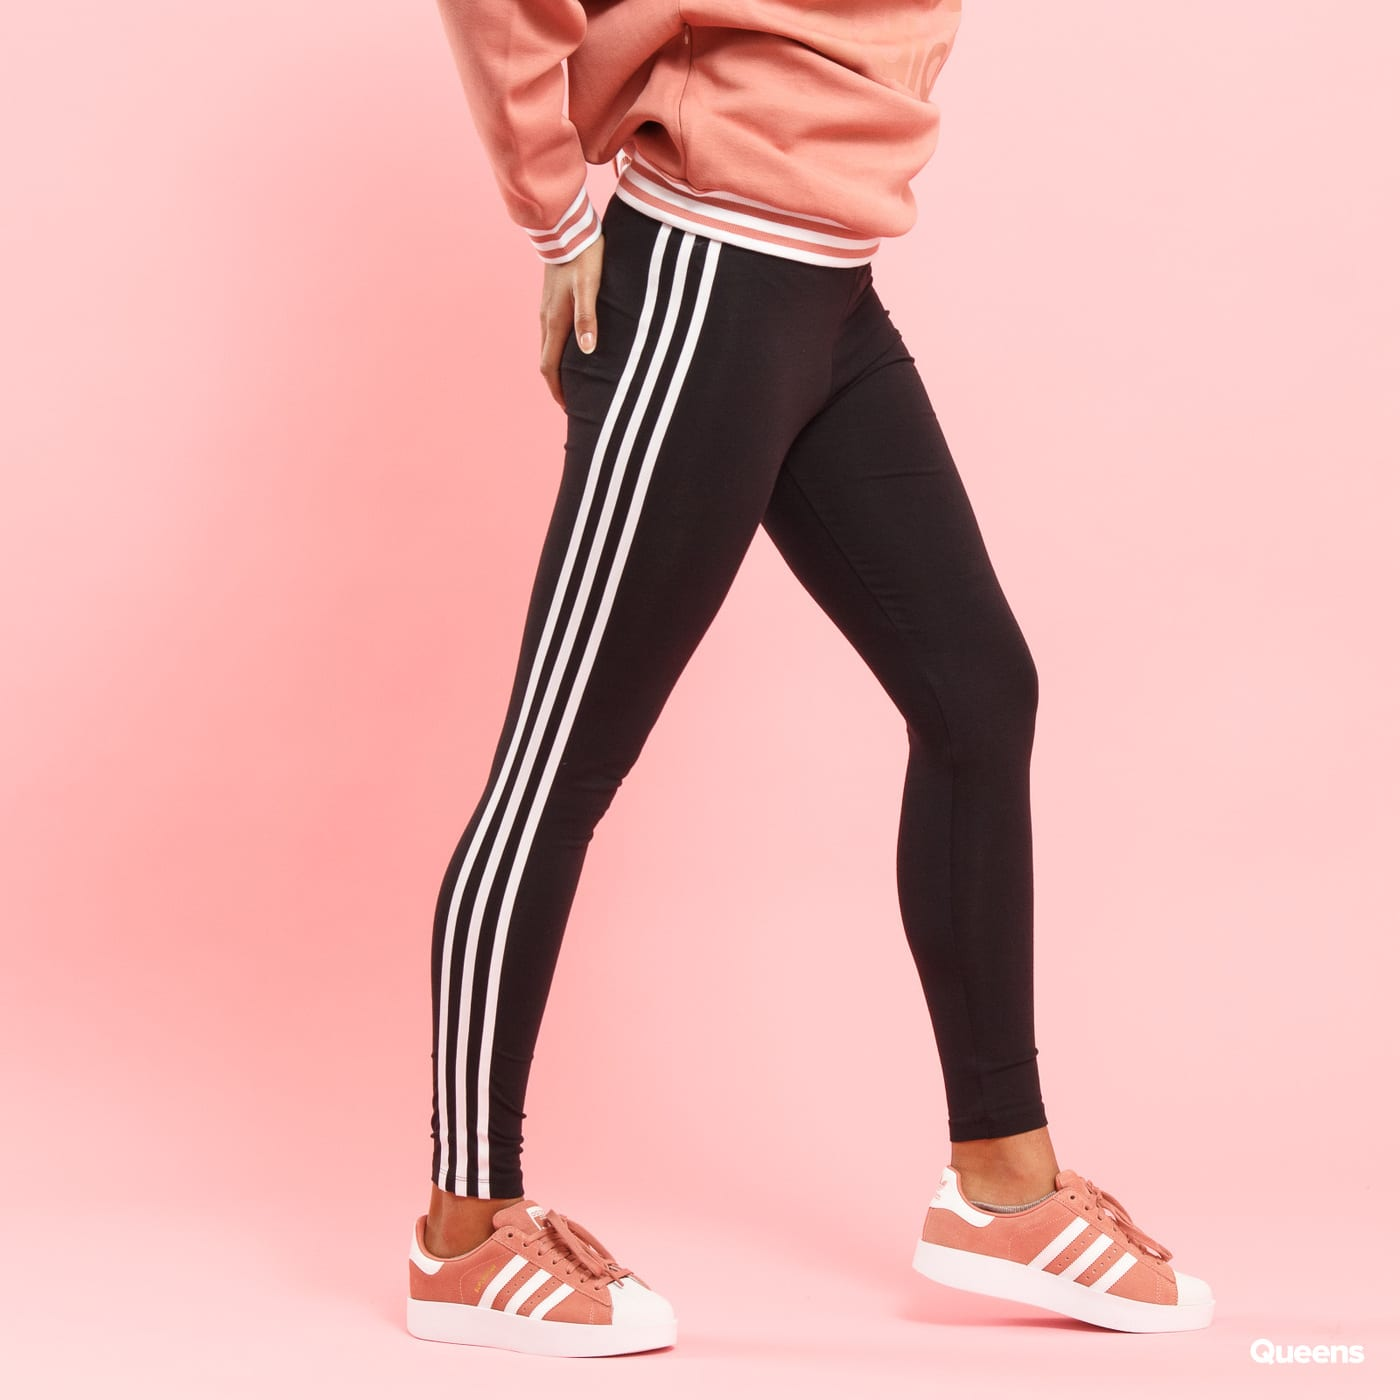 Legíny adidas 3 Stripes Tight (CE2441) – Queens 💚 6c51715dc3